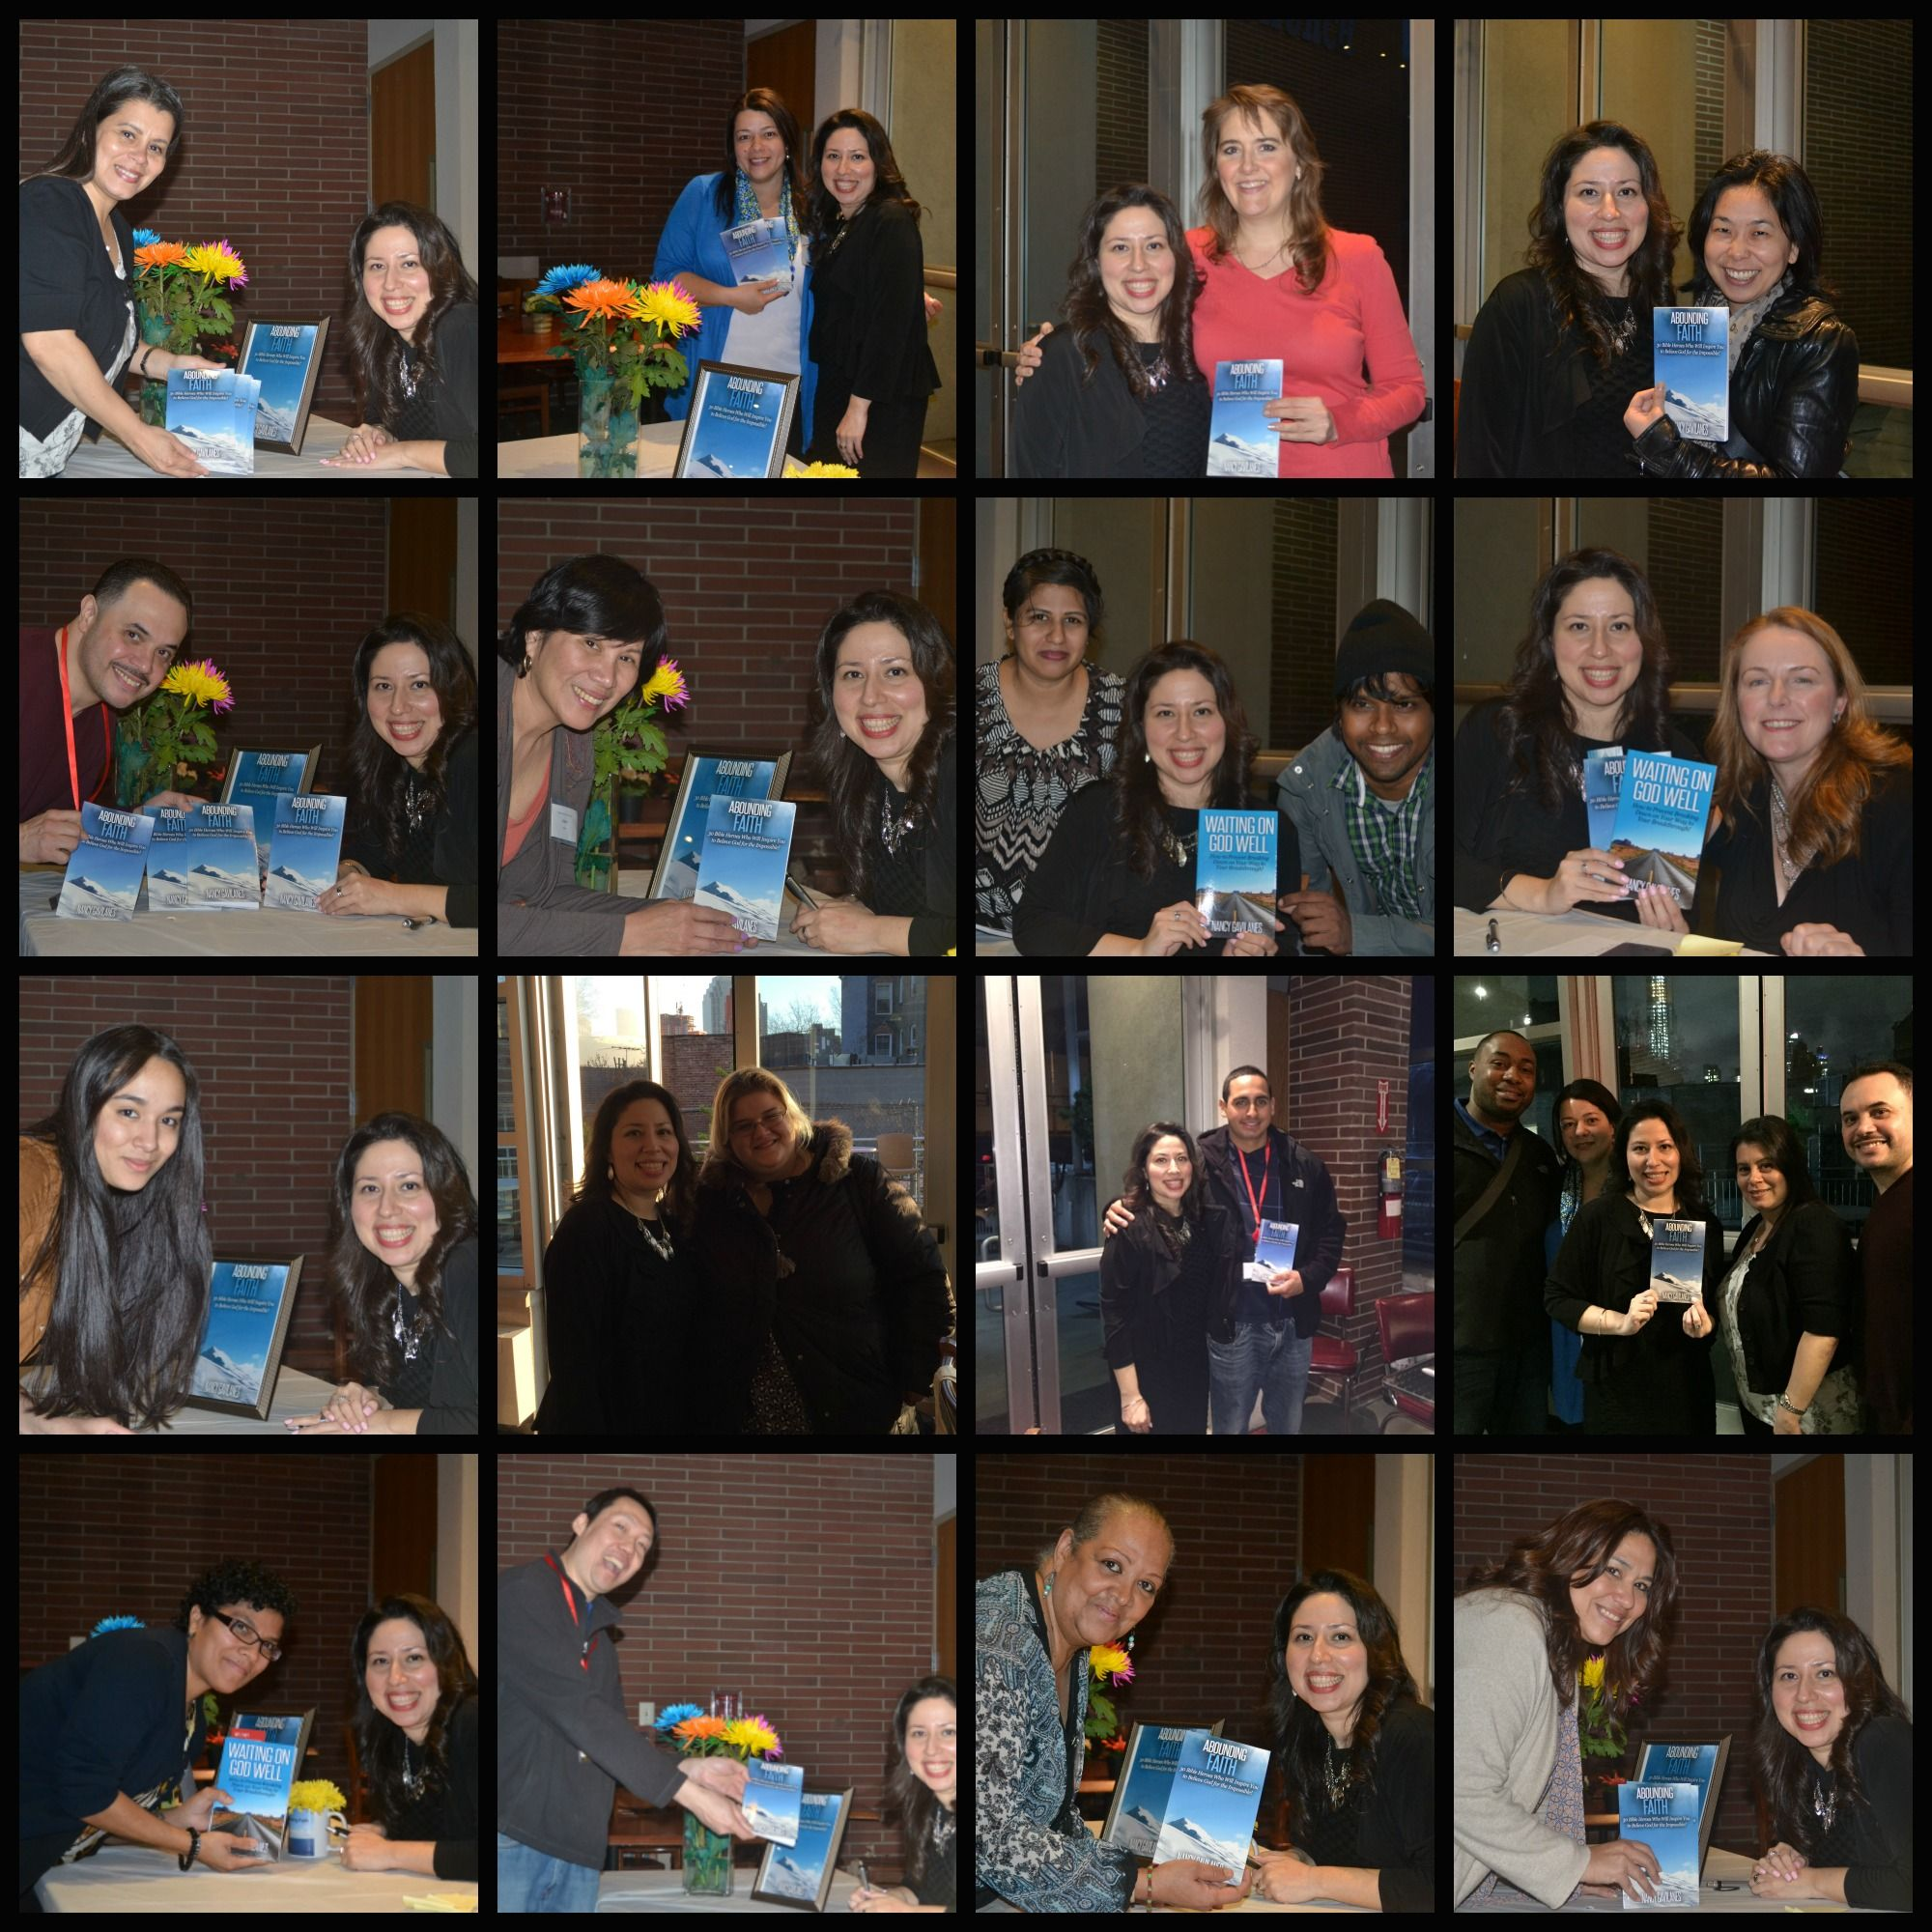 Look at all these smiling faces? Love it! You can read more reflections and